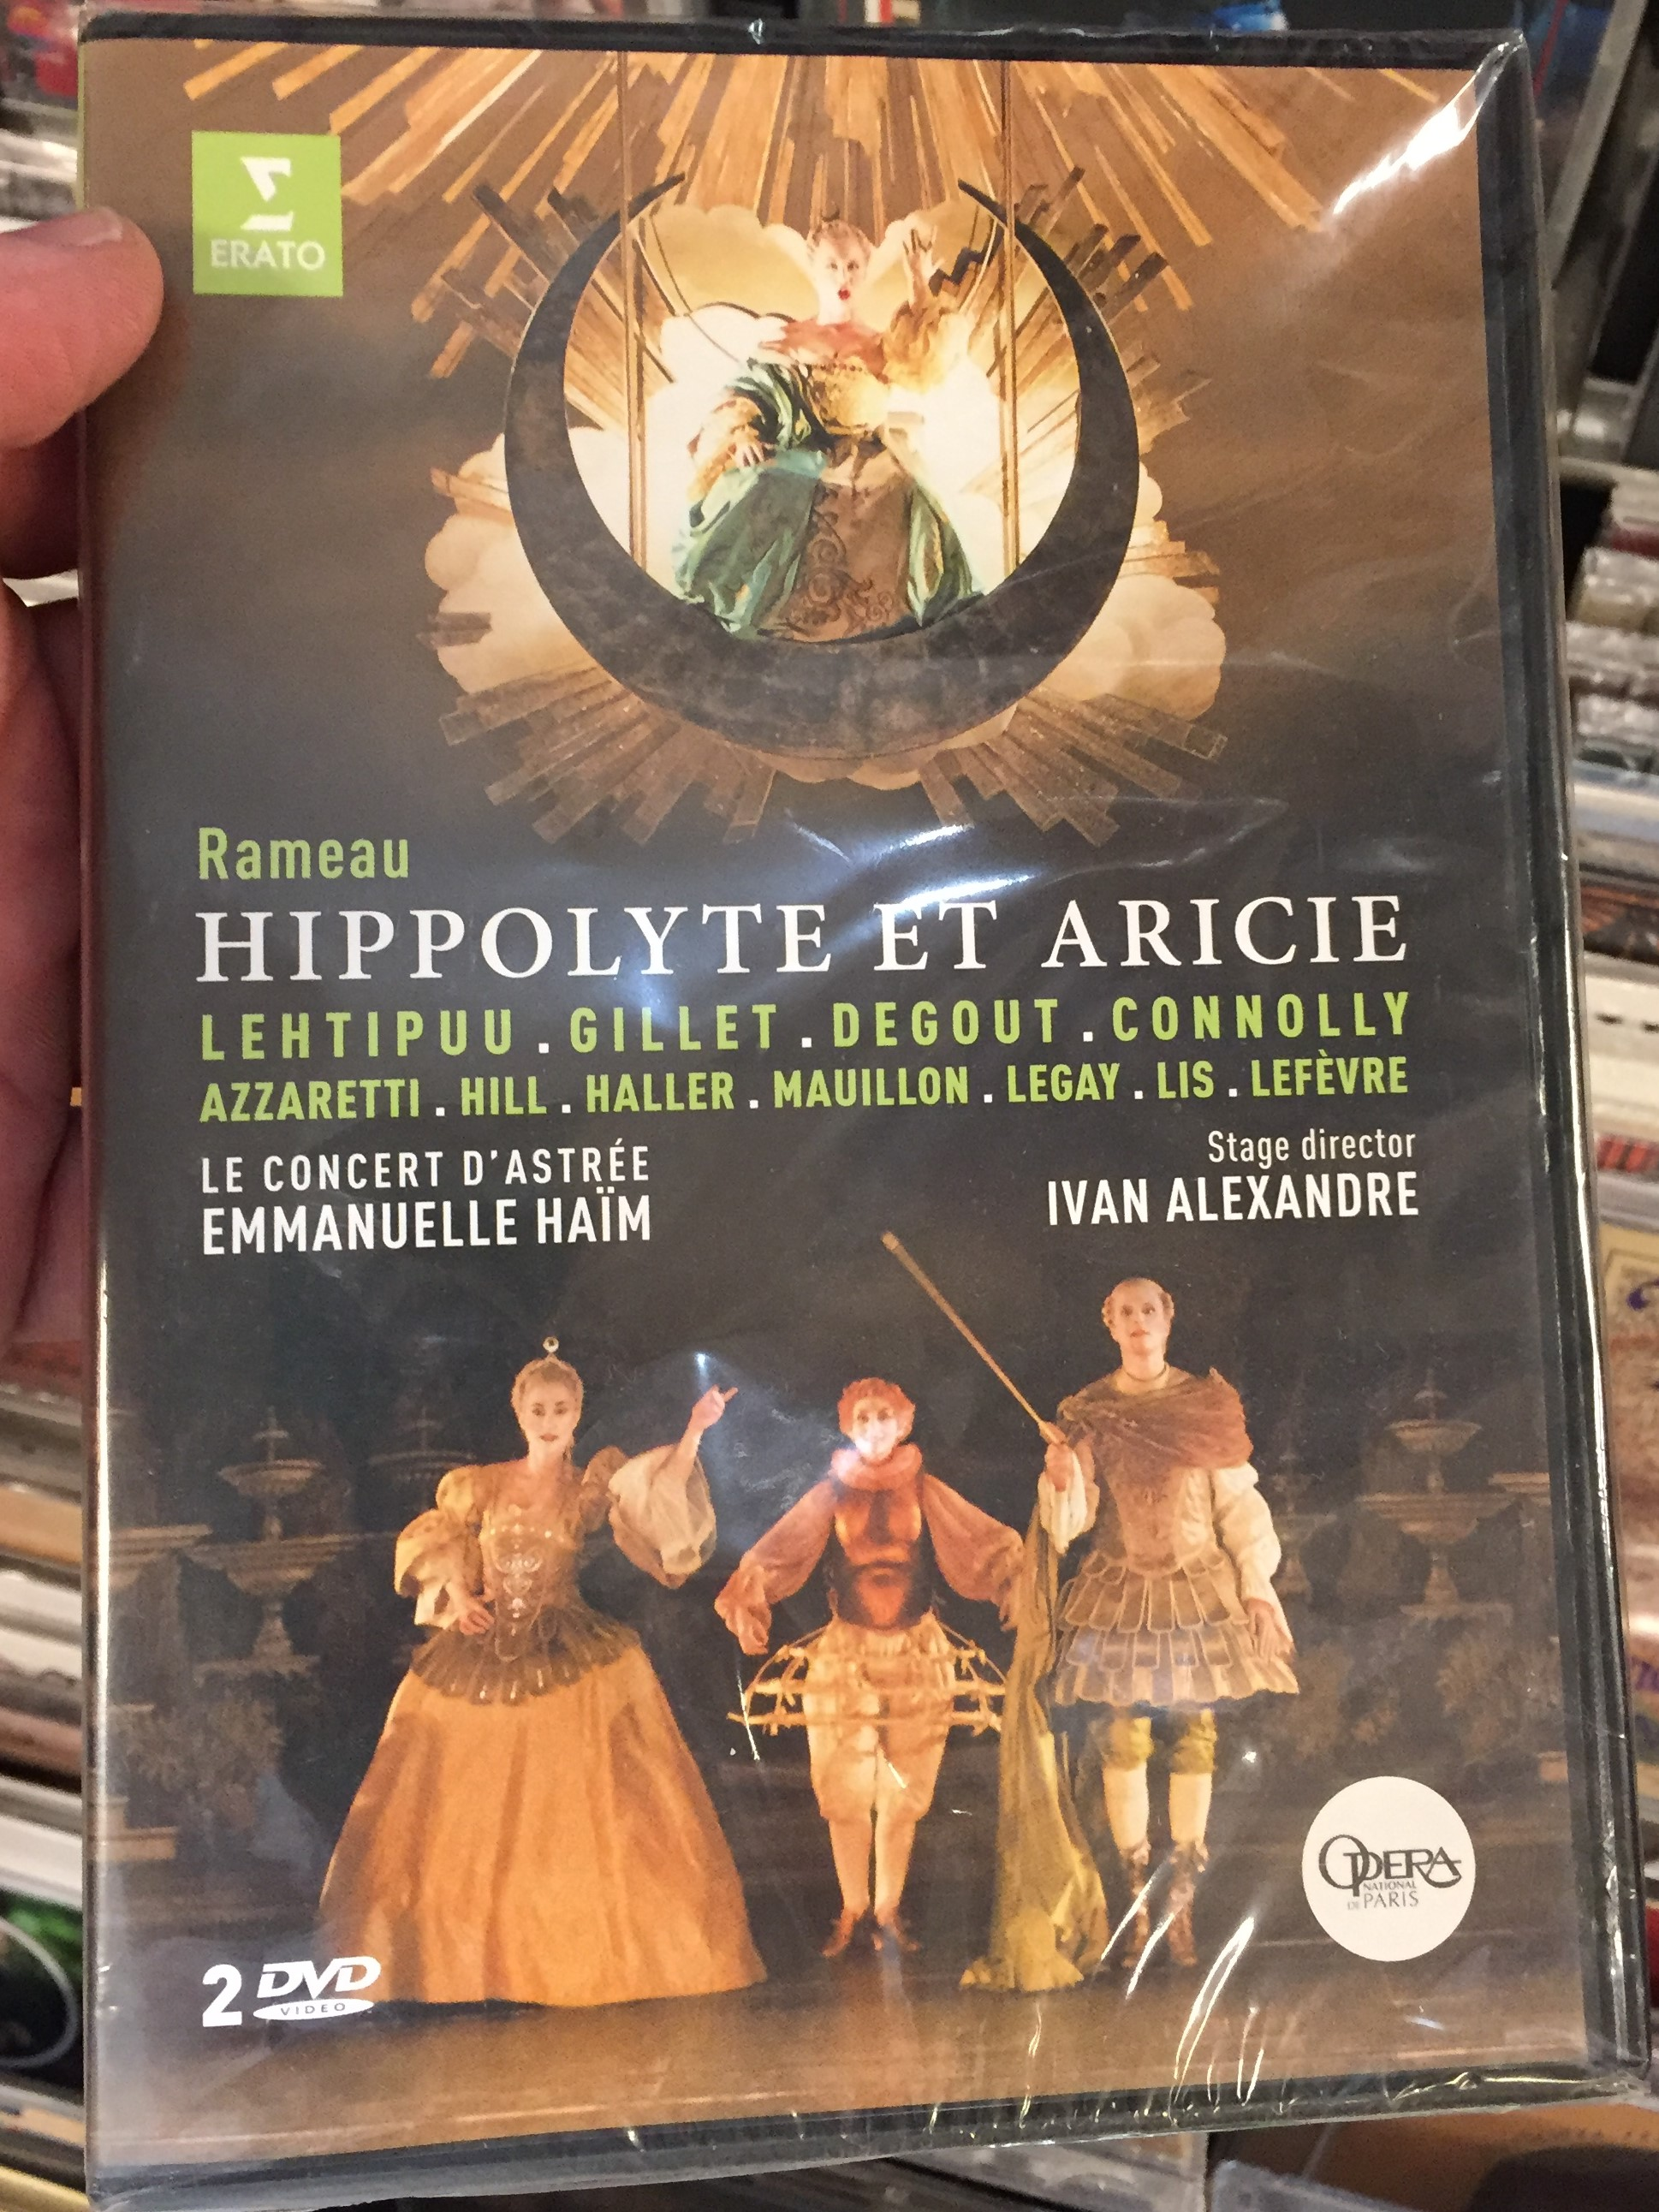 jean-philippe-rameau-hippolyte-et-aricie-dvd-lehtipuu-gillet-degout-connolly-stage-director-ivan-alexandre-2-dvd-directed-by-olivier-simonnet-conducted-by-emmanuelle-haim-1-.jpg